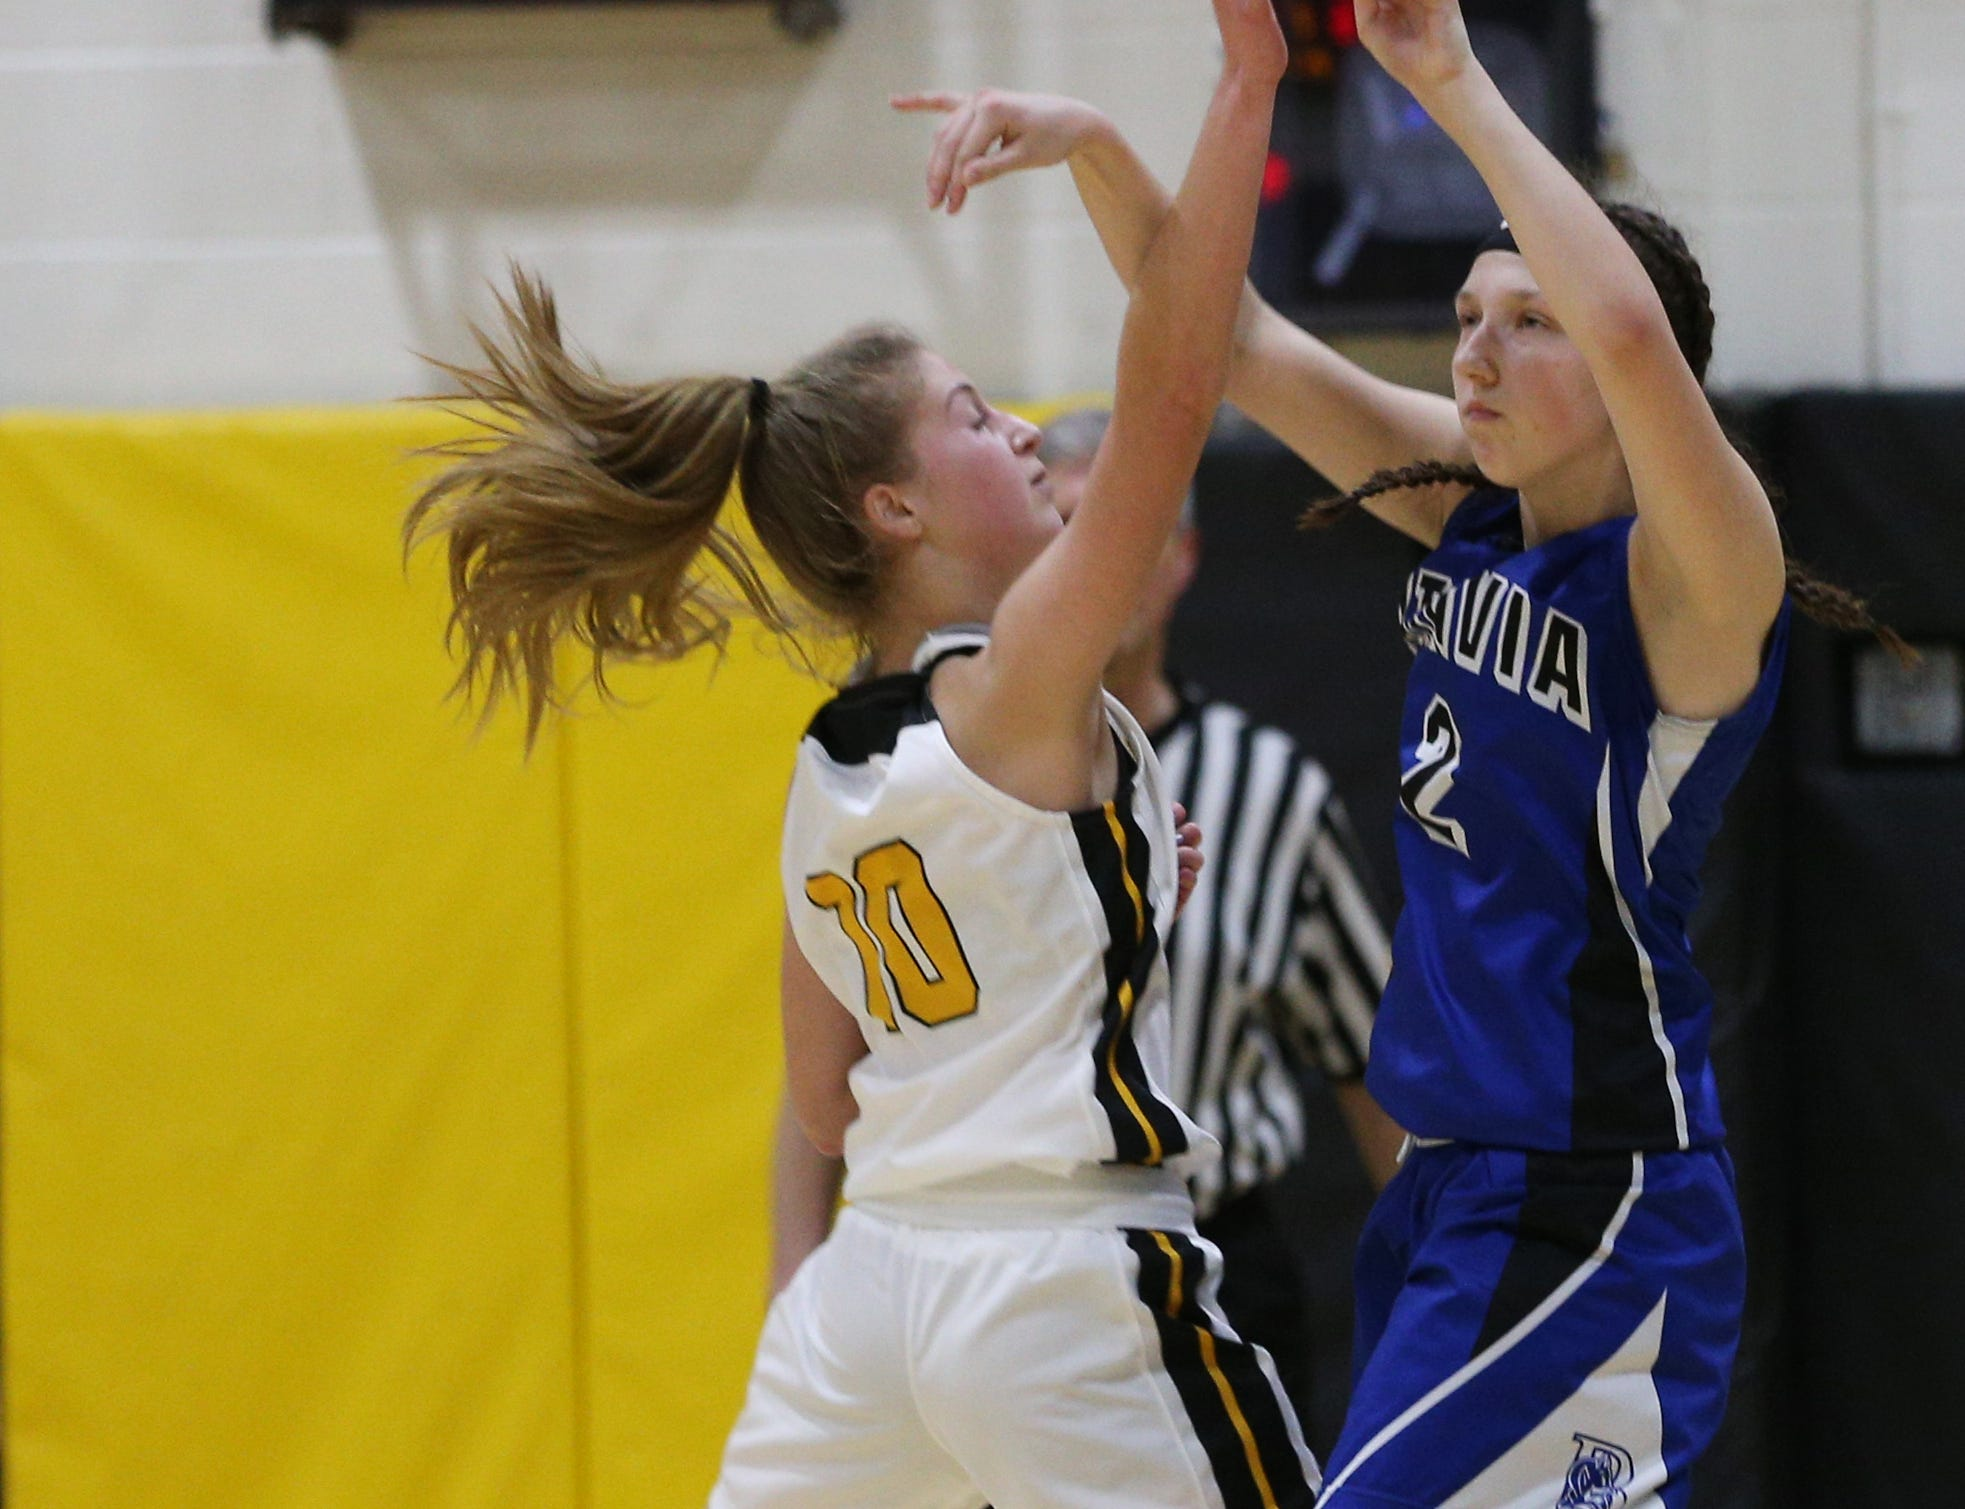 HF-L's Hannah Selke (10) tries to block Batavia's Bryn Wormley (2).